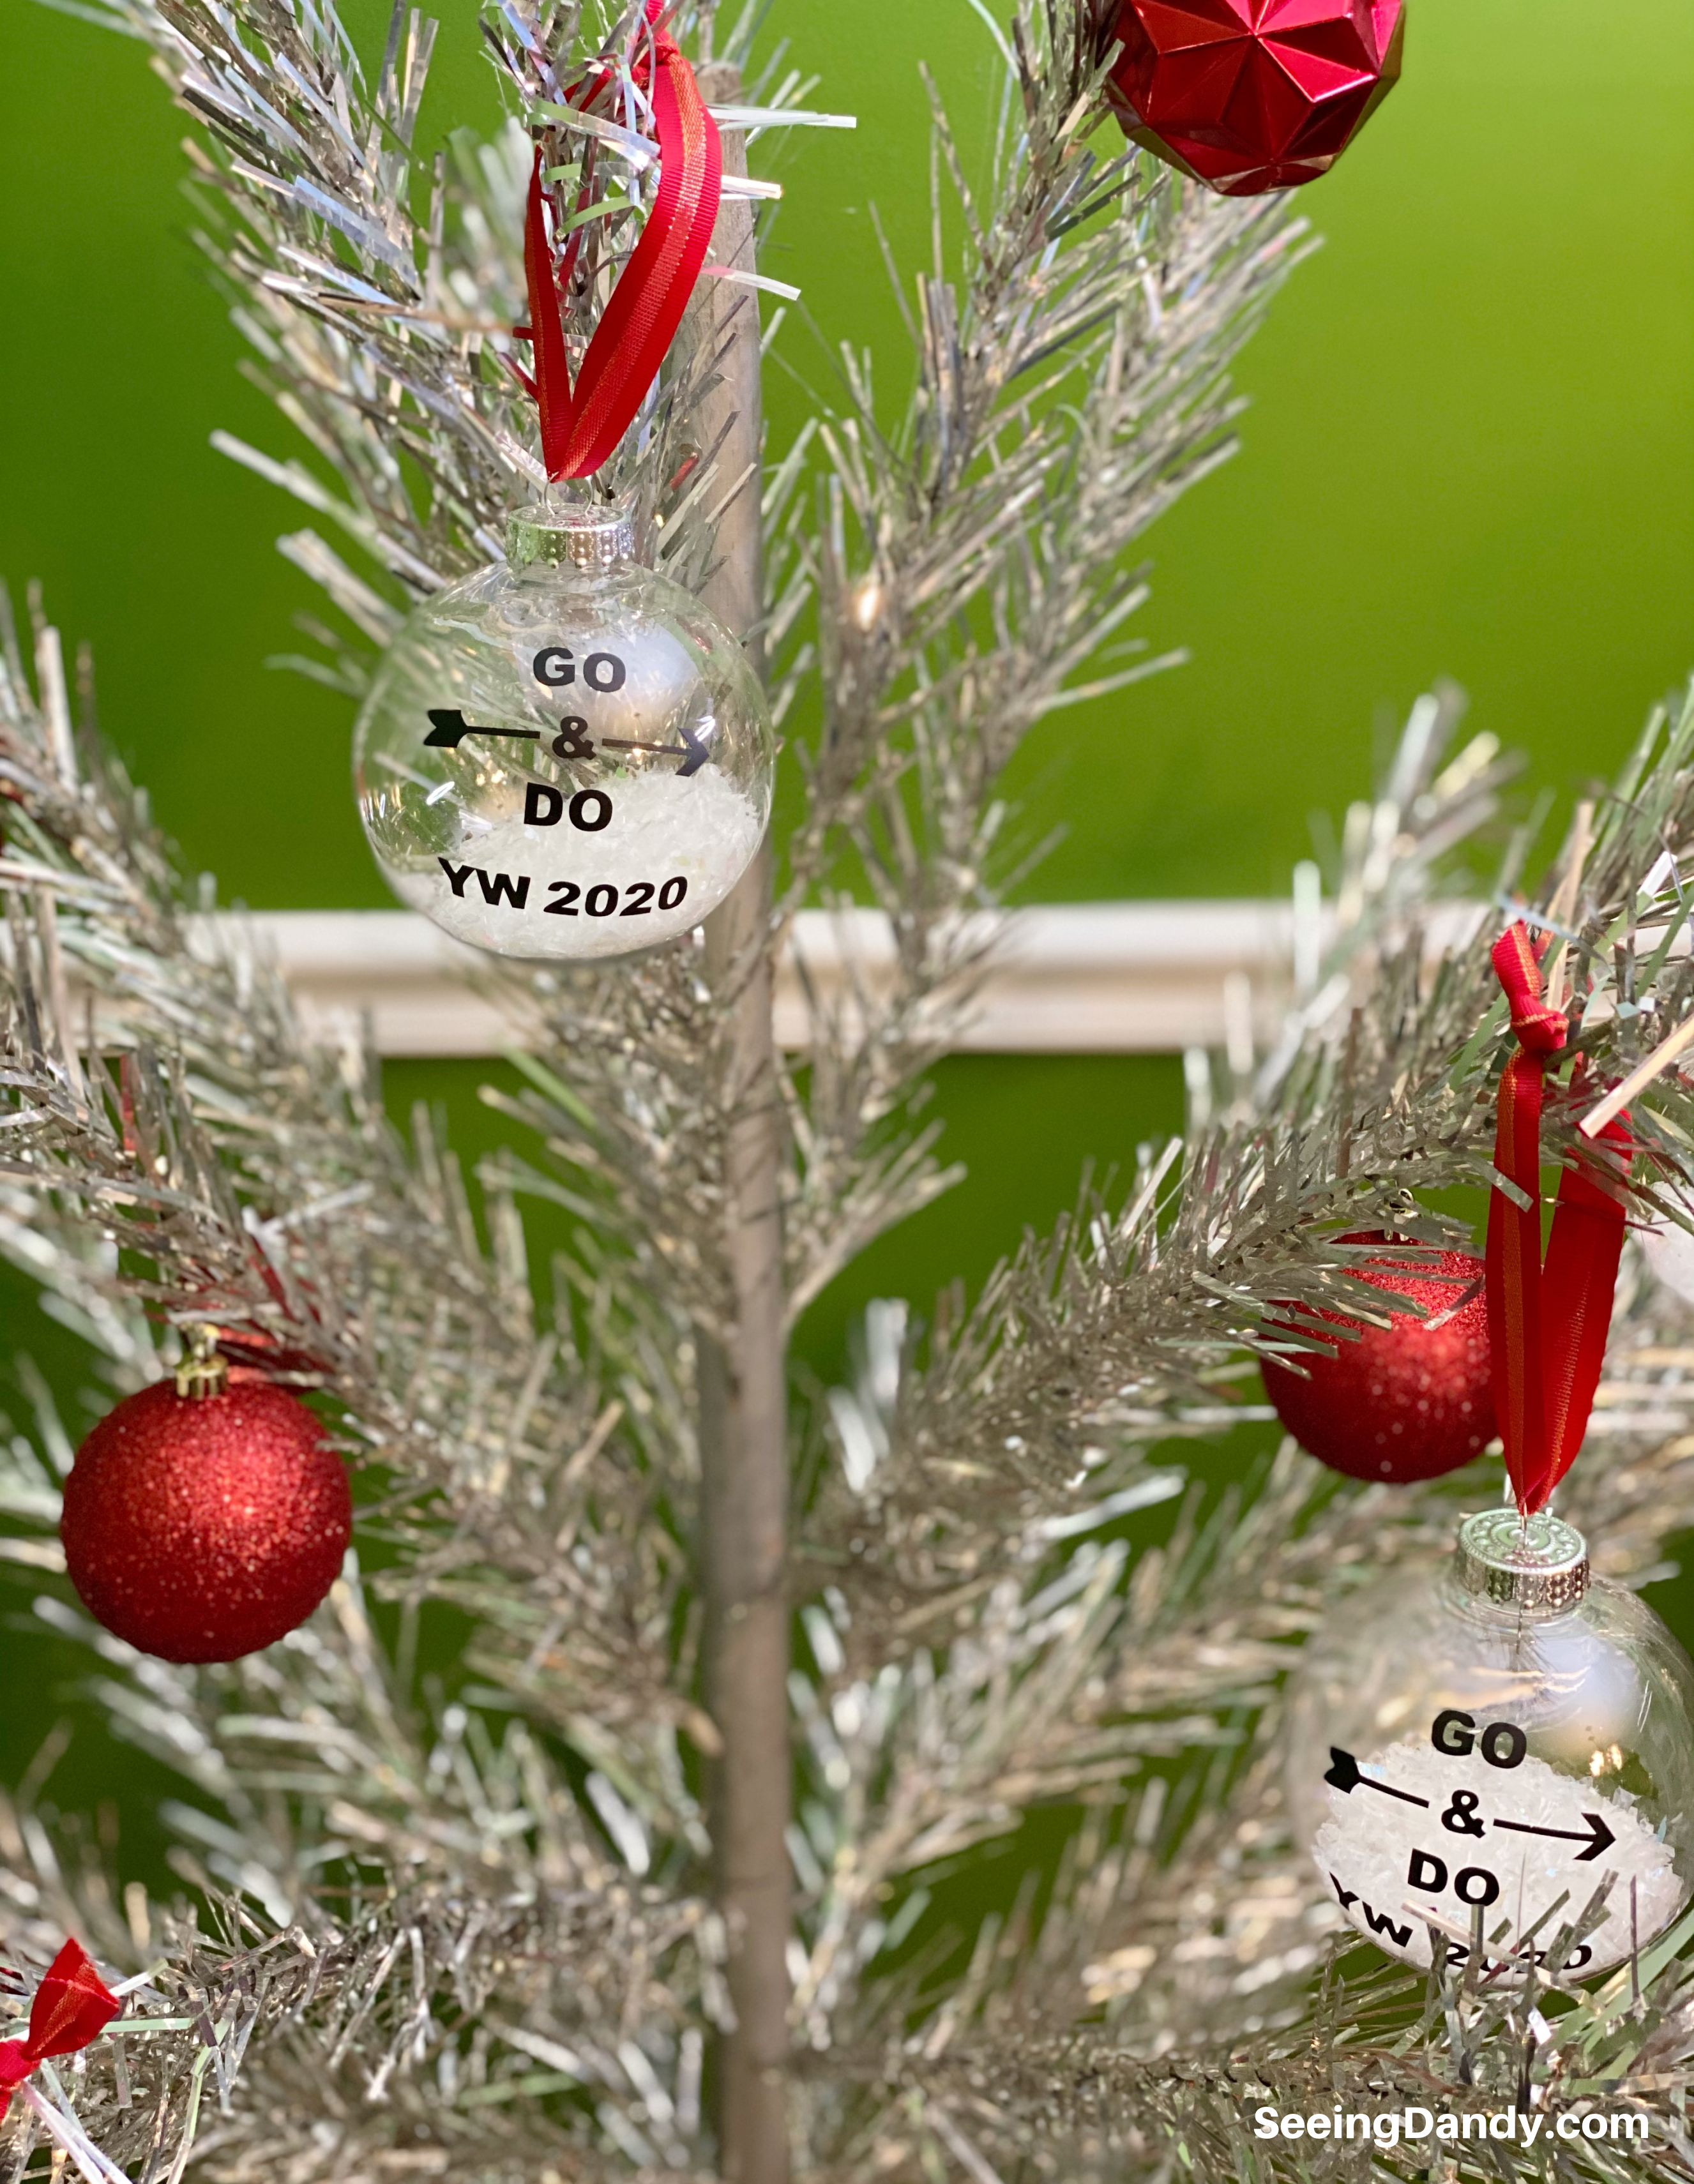 aluminum christmas tree, lds christmas ornaments, craft ornaments, DIY YW Christmas ornament, 2020 youth theme, go and do, the church of jesus christ of latter day saints, easy to make christmas ornaments, free svg file, red ribbon, clear ball ornaments, plastic ornaments, vintage christmas tree, red retro ornaments, silver tree